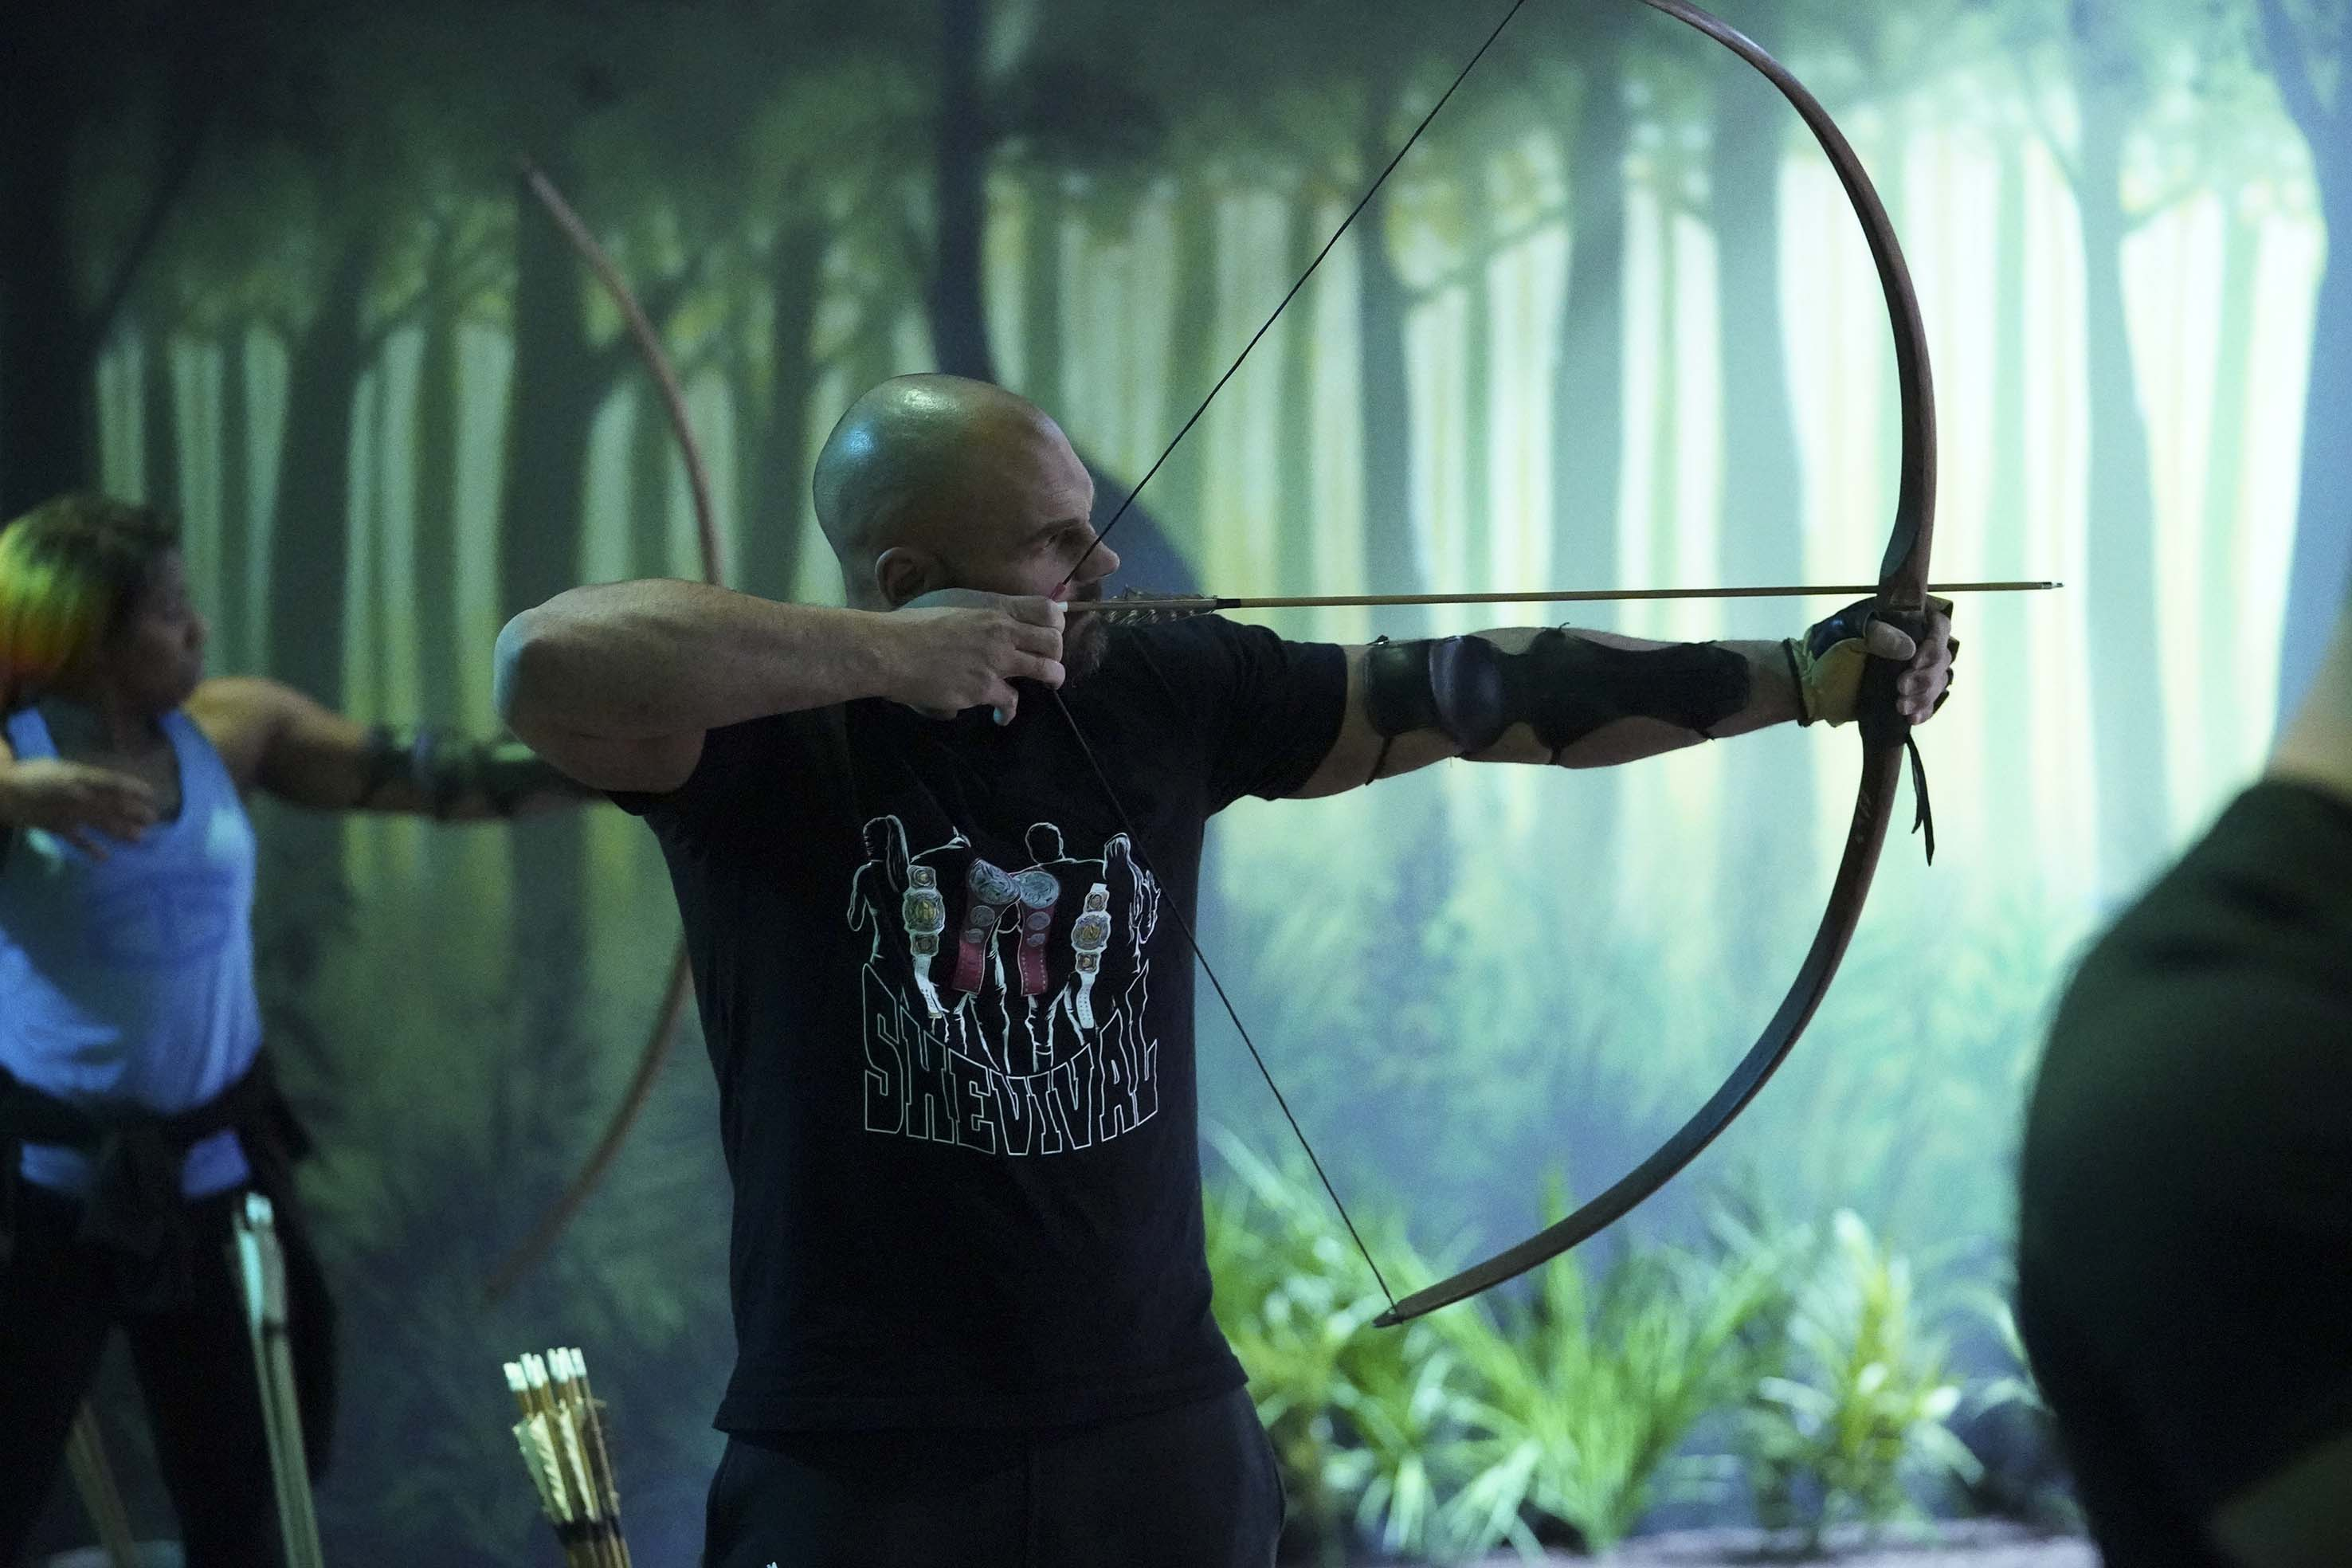 Man takes aim at target on archery range at The Bear Grylls Adventure